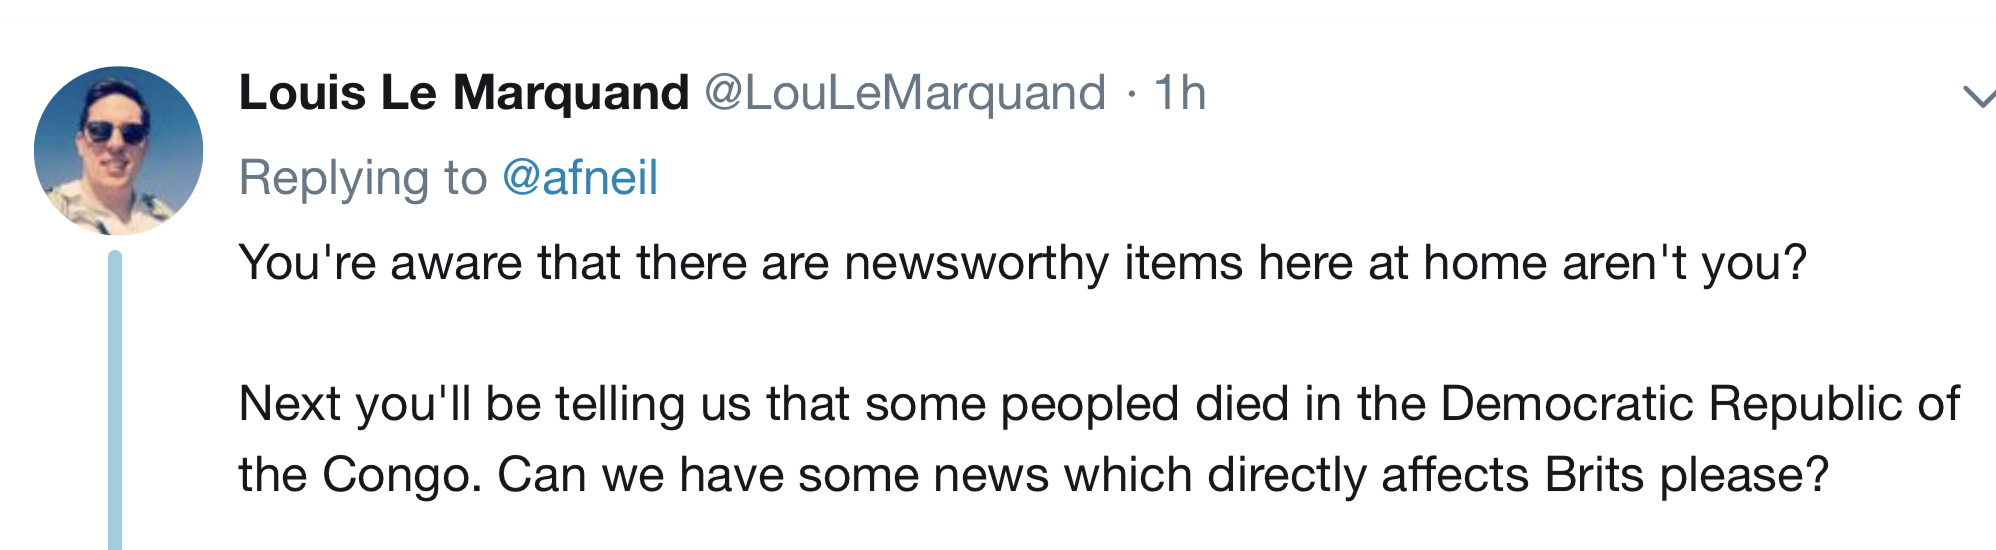 The chap (English? Frenchman living in England?0 seems a bit oblivious, and forgetful of similar attacks in britain, and even somewhat callous, but apparently this is the new PC position over there.